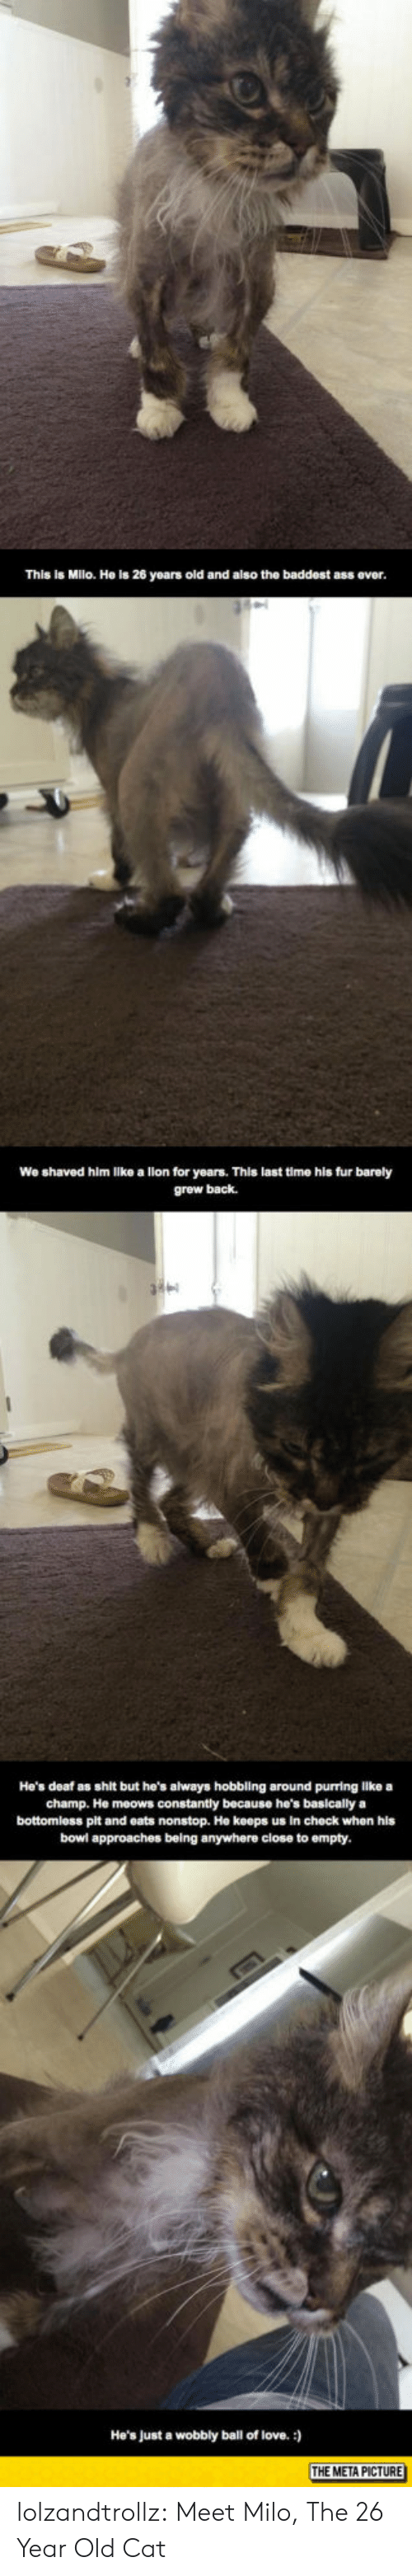 Ass, Love, and Shit: This is Milo. He is 26 years old and also the baddost ass ever  We shaved him like a lion for years. This last time his fur barely  grew back.  He's deaf as shit but he's always hobbling around purring llke a  champ. He meows constantly because he's basically a  bottomless pit and eats nonstop. He keeps us in check when his  bowl approaches being anywhere close to empty  He's Just a wobbly ball of love.  THE META PICTURE lolzandtrollz:  Meet Milo, The 26 Year Old Cat